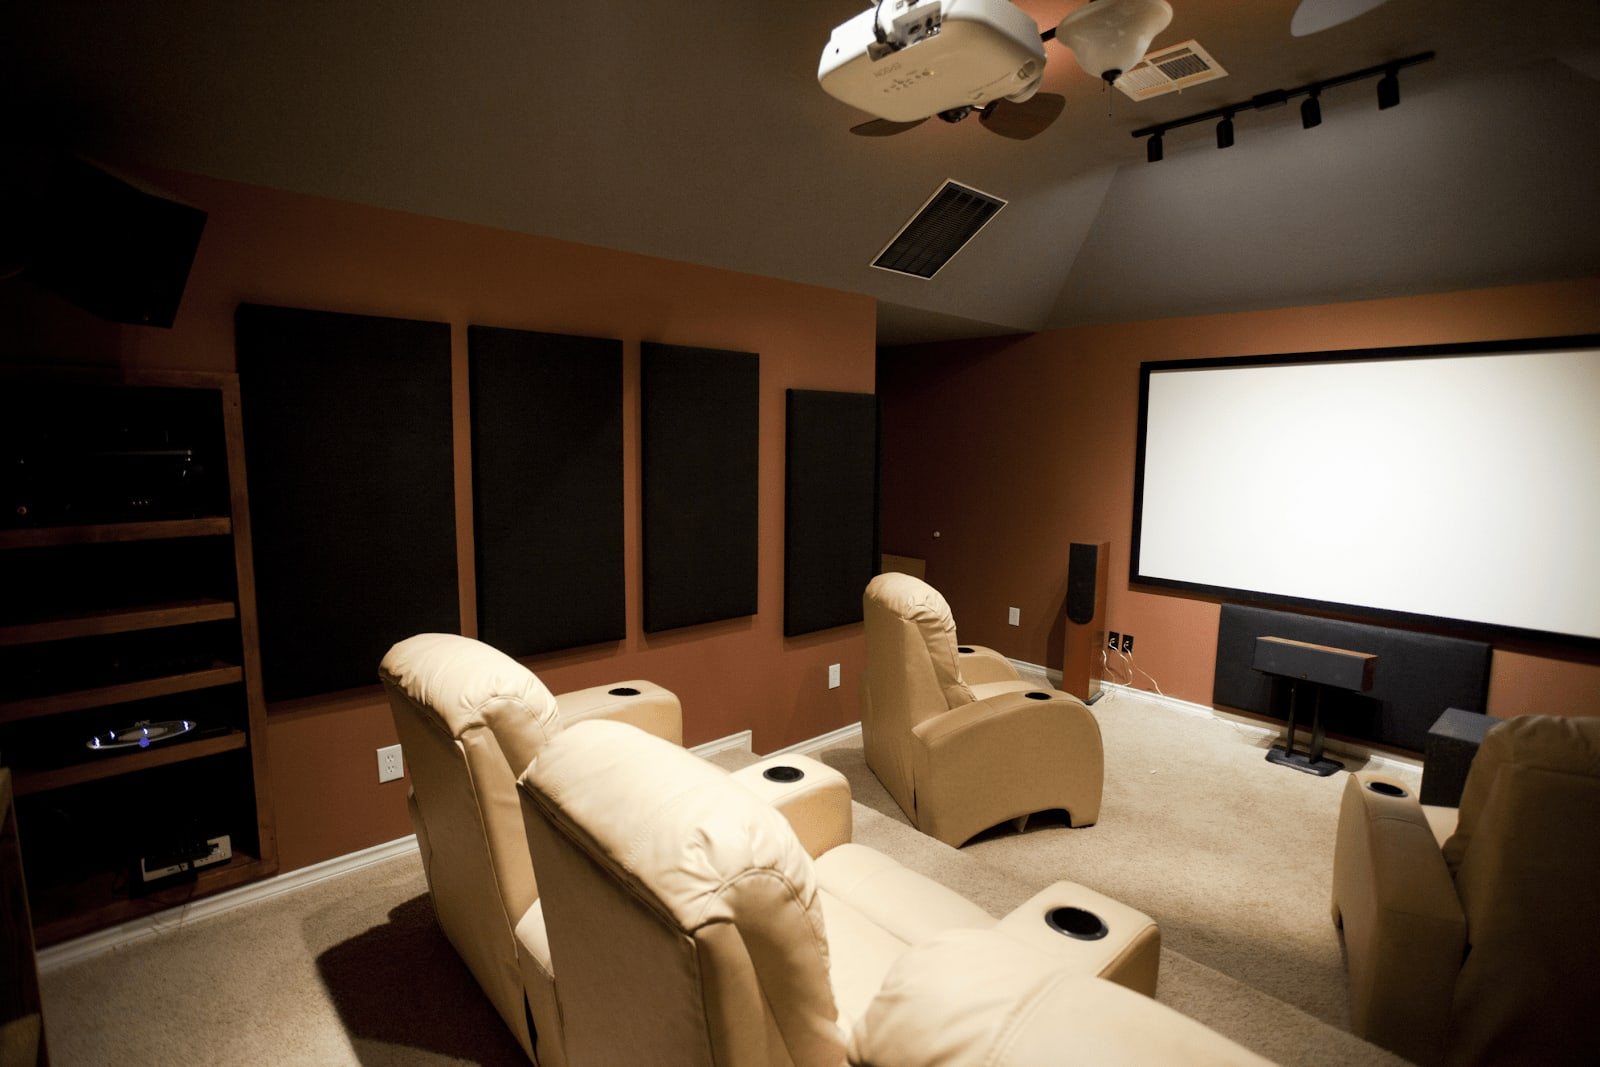 Best Technologies to Add to Your Home Theater